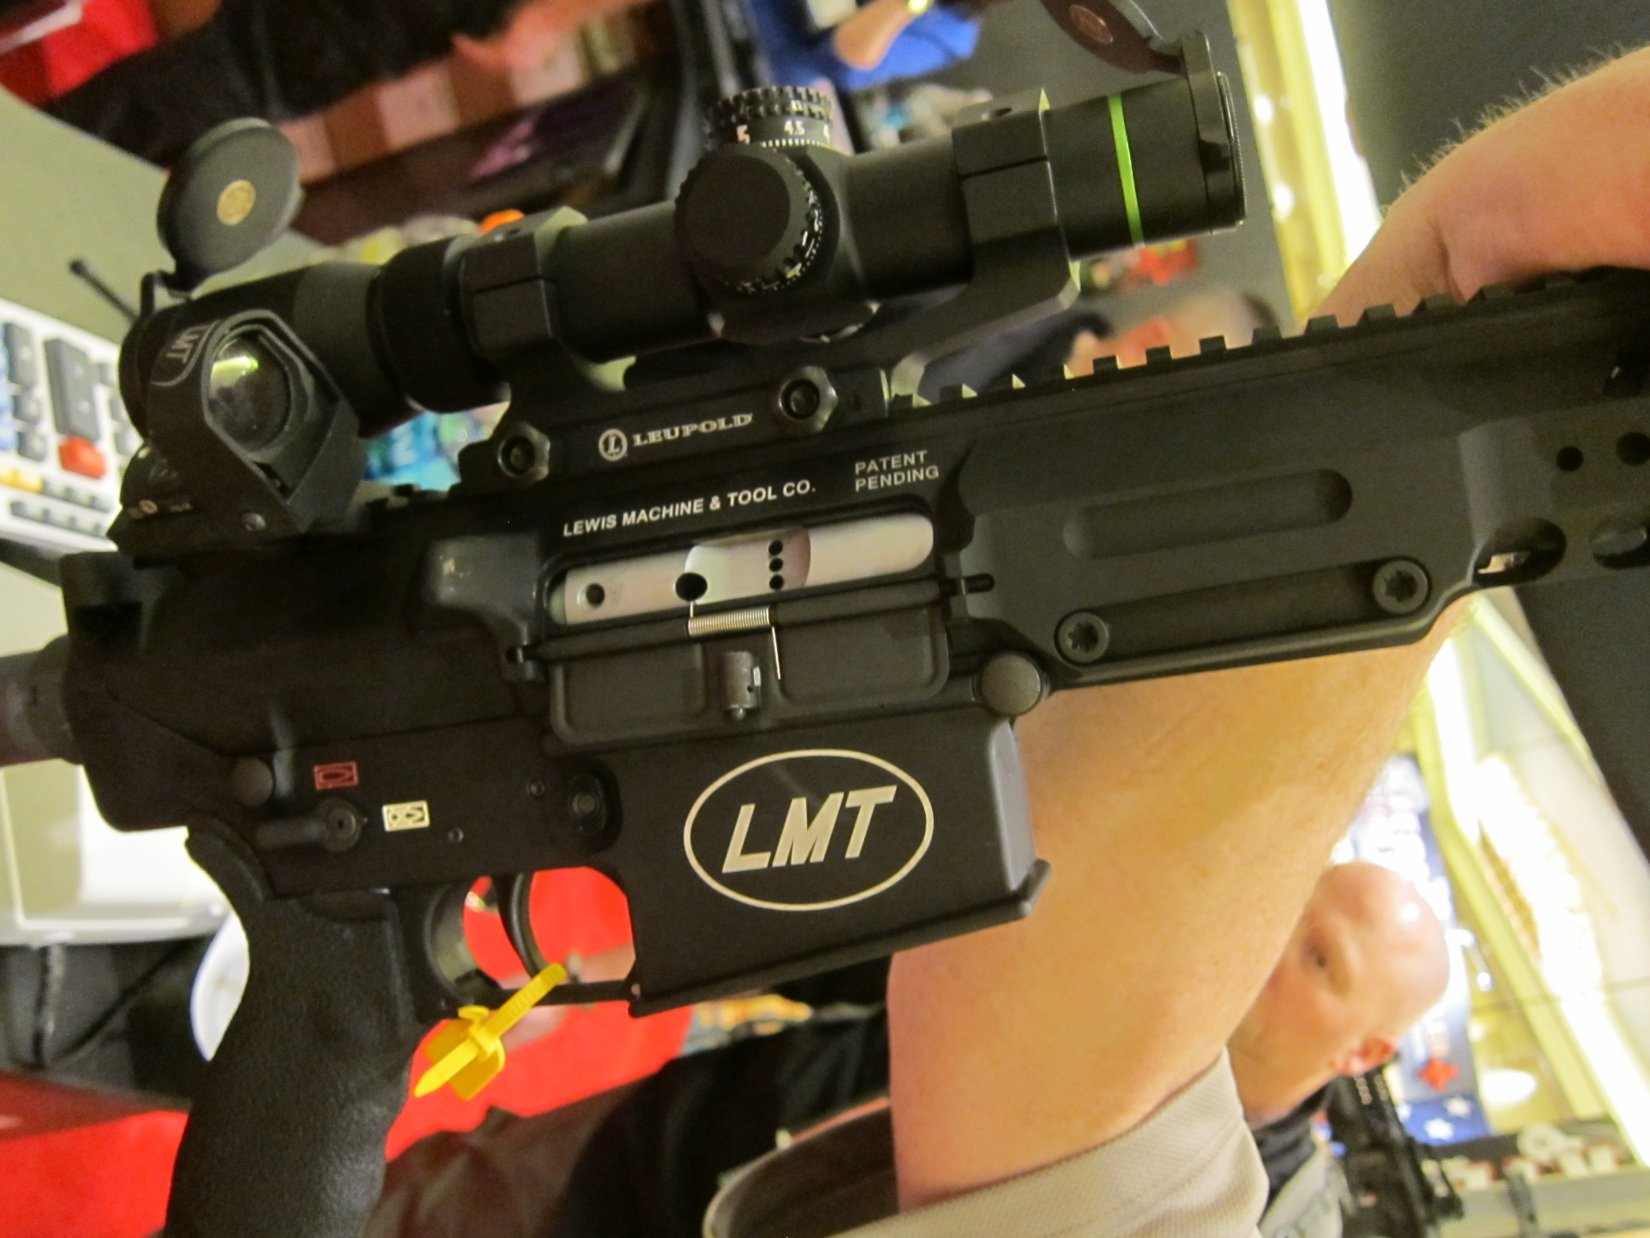 Lewis Machine  Tool LMT LM8MWS Tactical AR 10 7.62x51mm NATO .308 Win. Upper Receiver SHOT Show 2012 DefenseReview.com DR 7 Lewis Machine & Tool LMT LM8MWS (also written LM8 MWS) 16 Slick Receiver Monolithic Rail Platform 7.62mm NATO/.308 Win. Tactical AR 10/SR 25 Type Battle Rifle/Carbine Upper Receiver(s) with Lightweight Modular Rail System